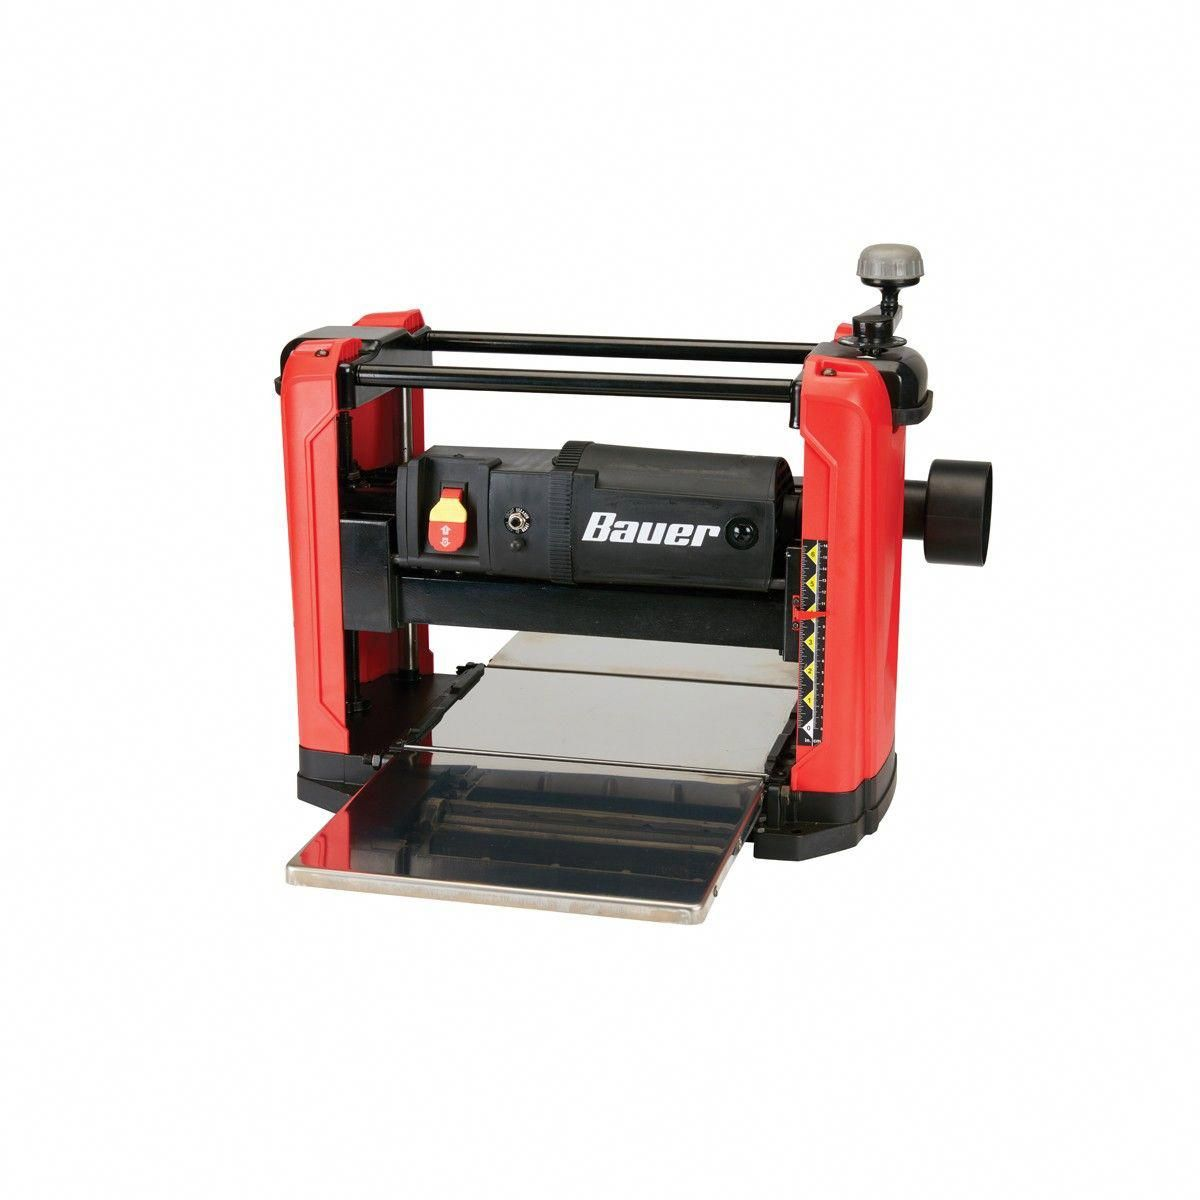 15 Amp 12-1/2 in. Portable Thickness Planer | Planer ...